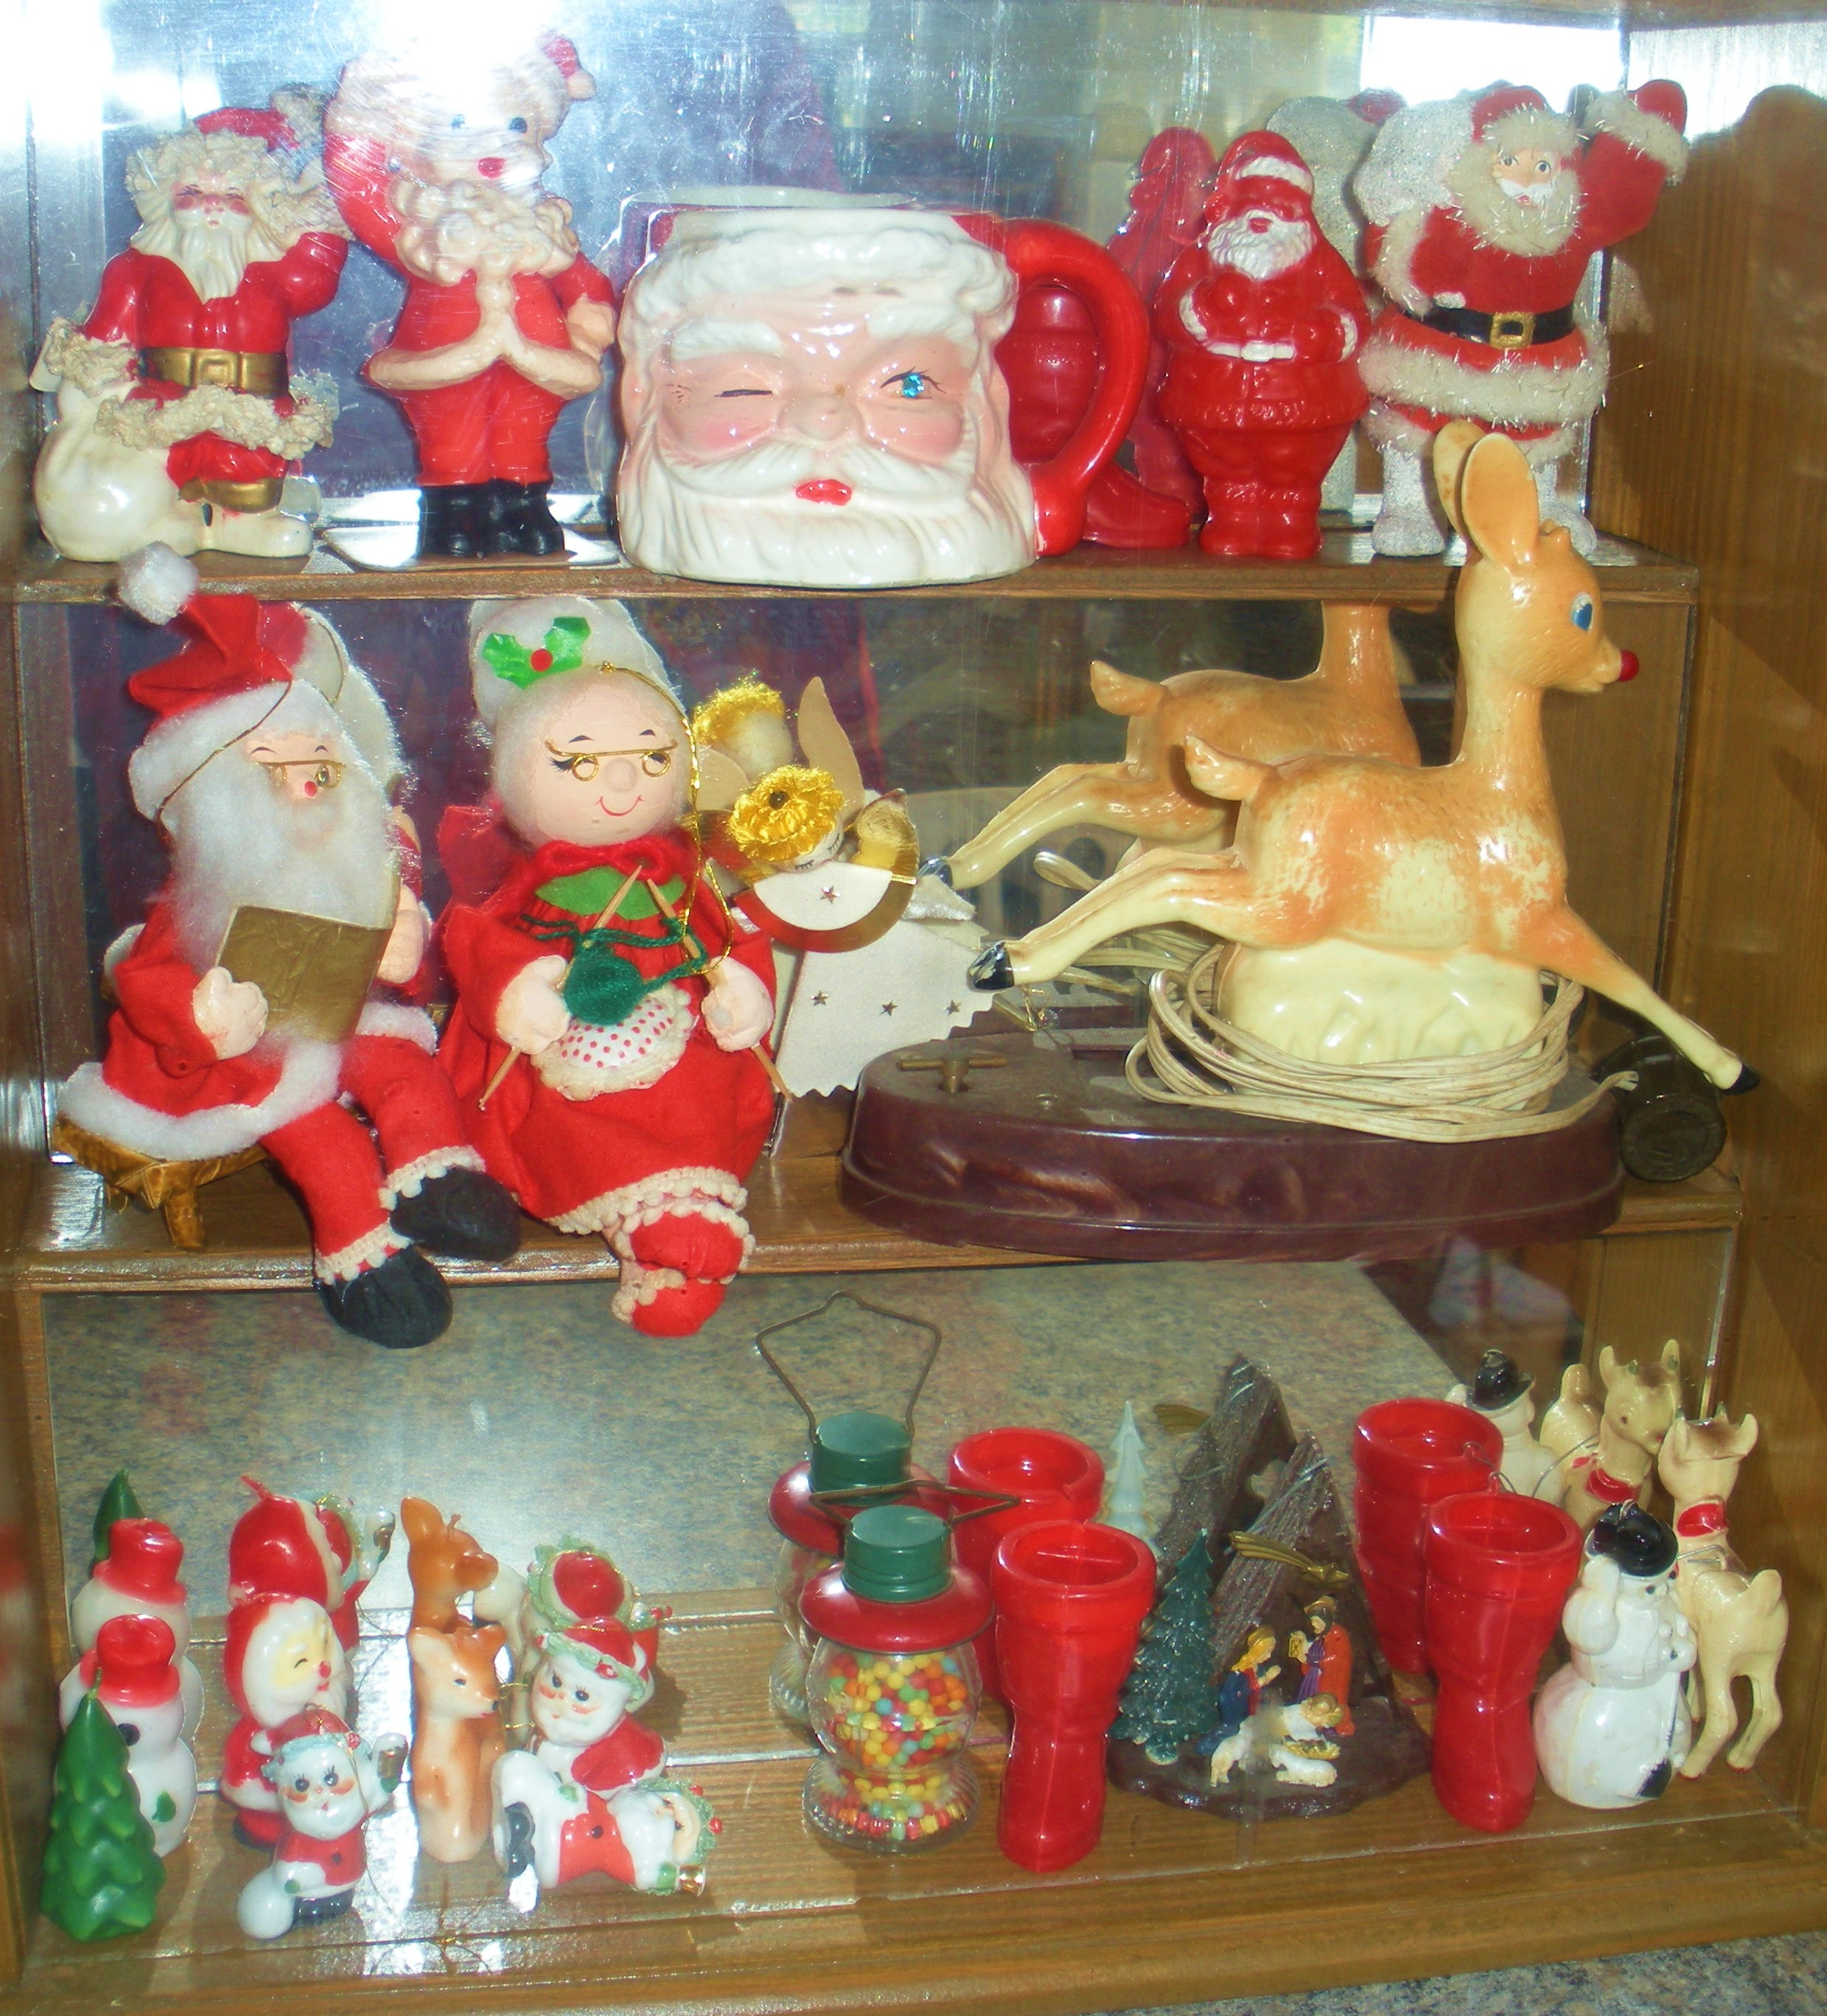 snow day and christmnas collections 133 - 1950s Christmas Decorations